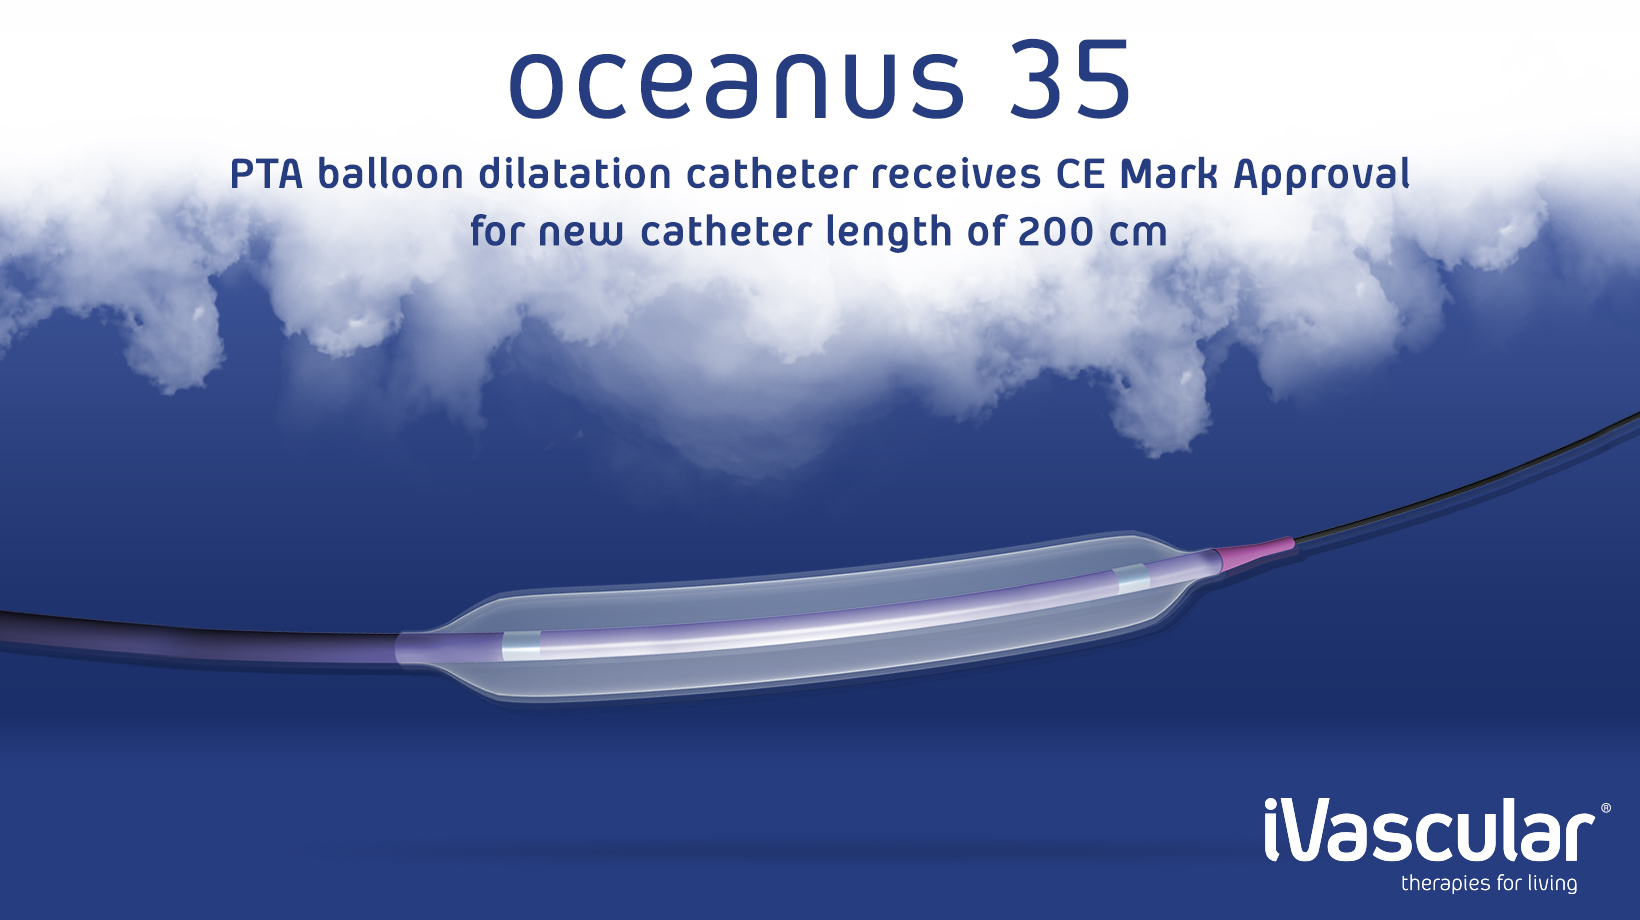 Oceanus 35, PTA balloon dilatation catheter receives CE Mark Approval for new catheter length of 200 cm.